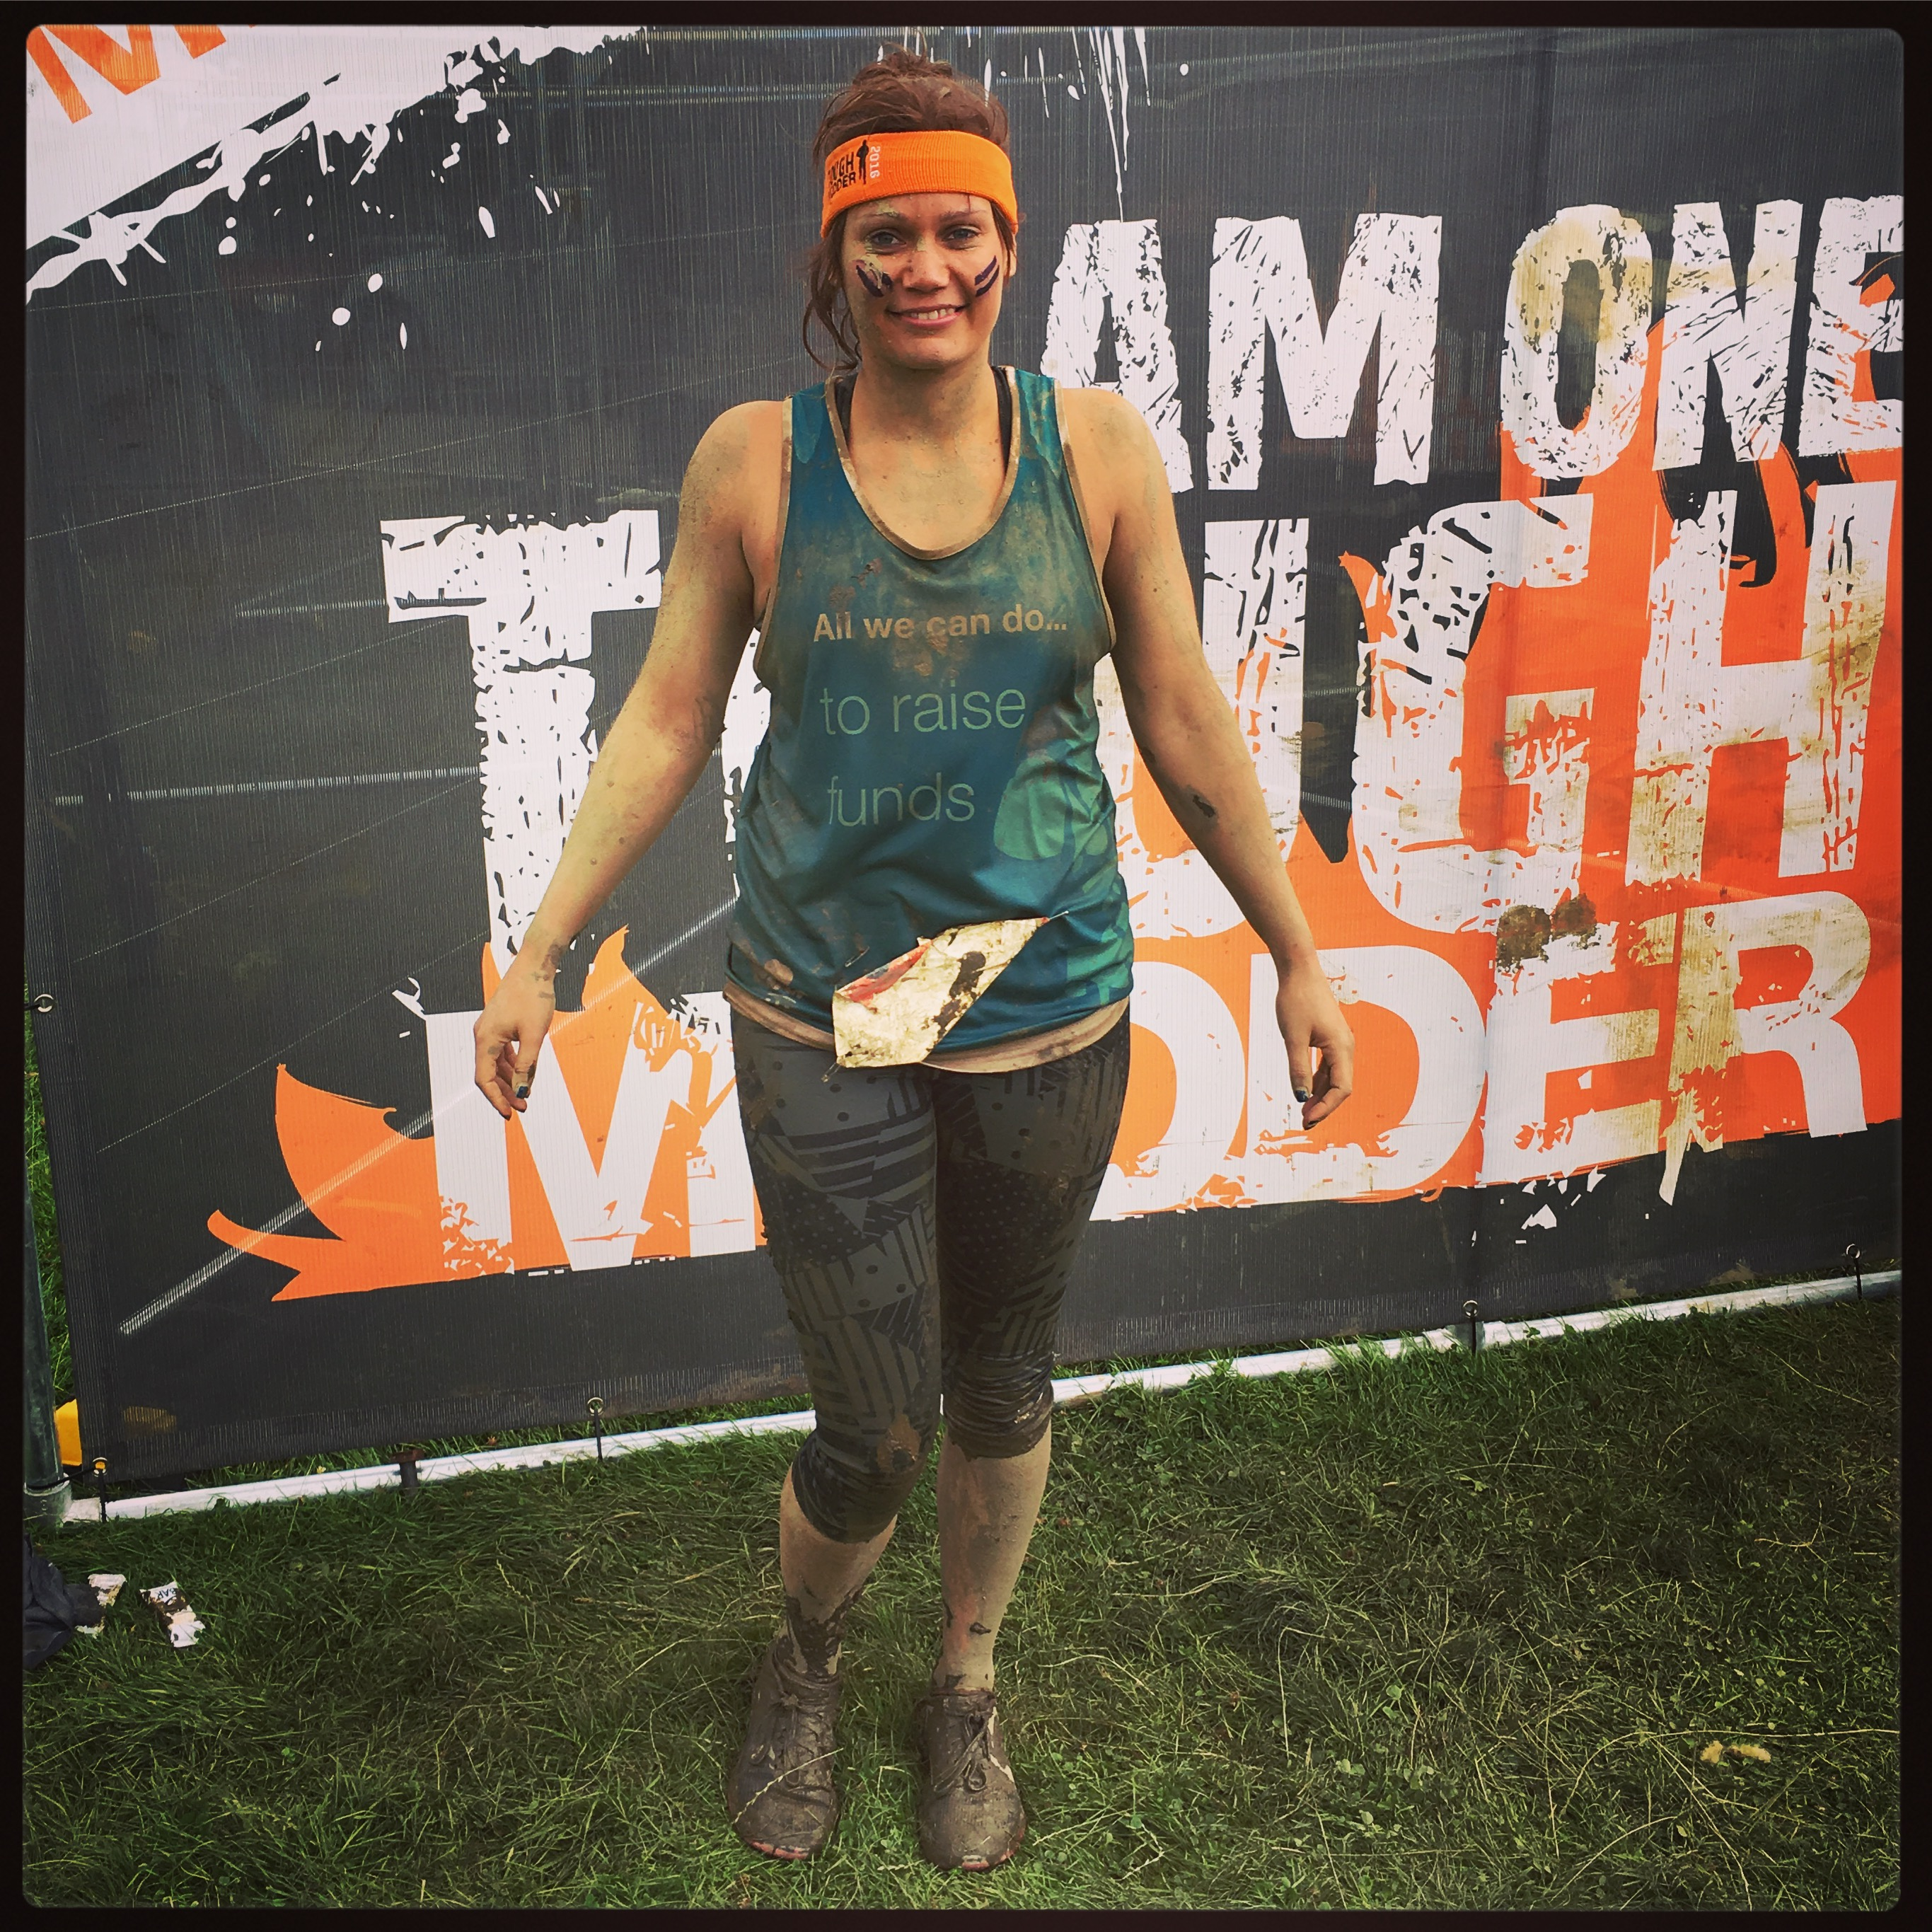 Alice's Total Warrior